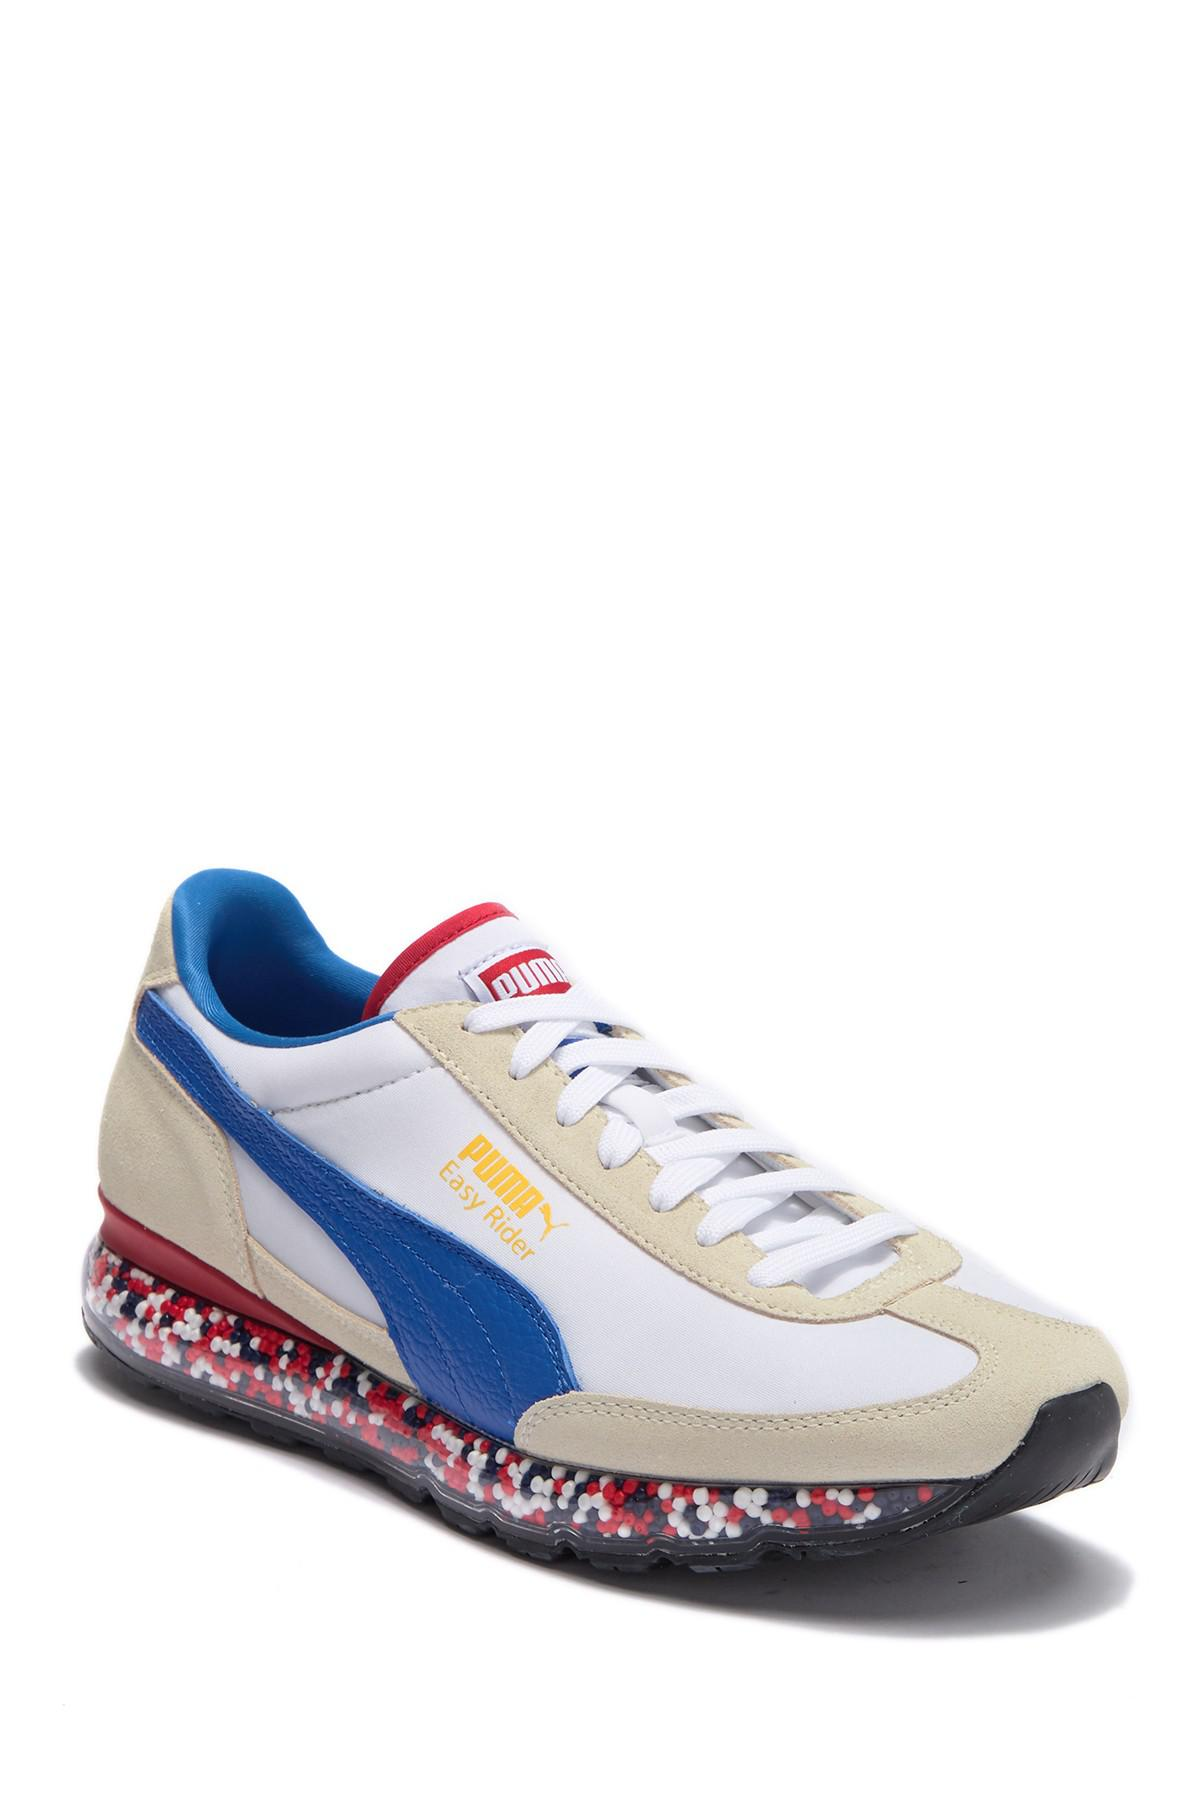 6970914fa66 Lyst - PUMA Jamming Easy Rider Contrast Suede Sneaker in White for Men